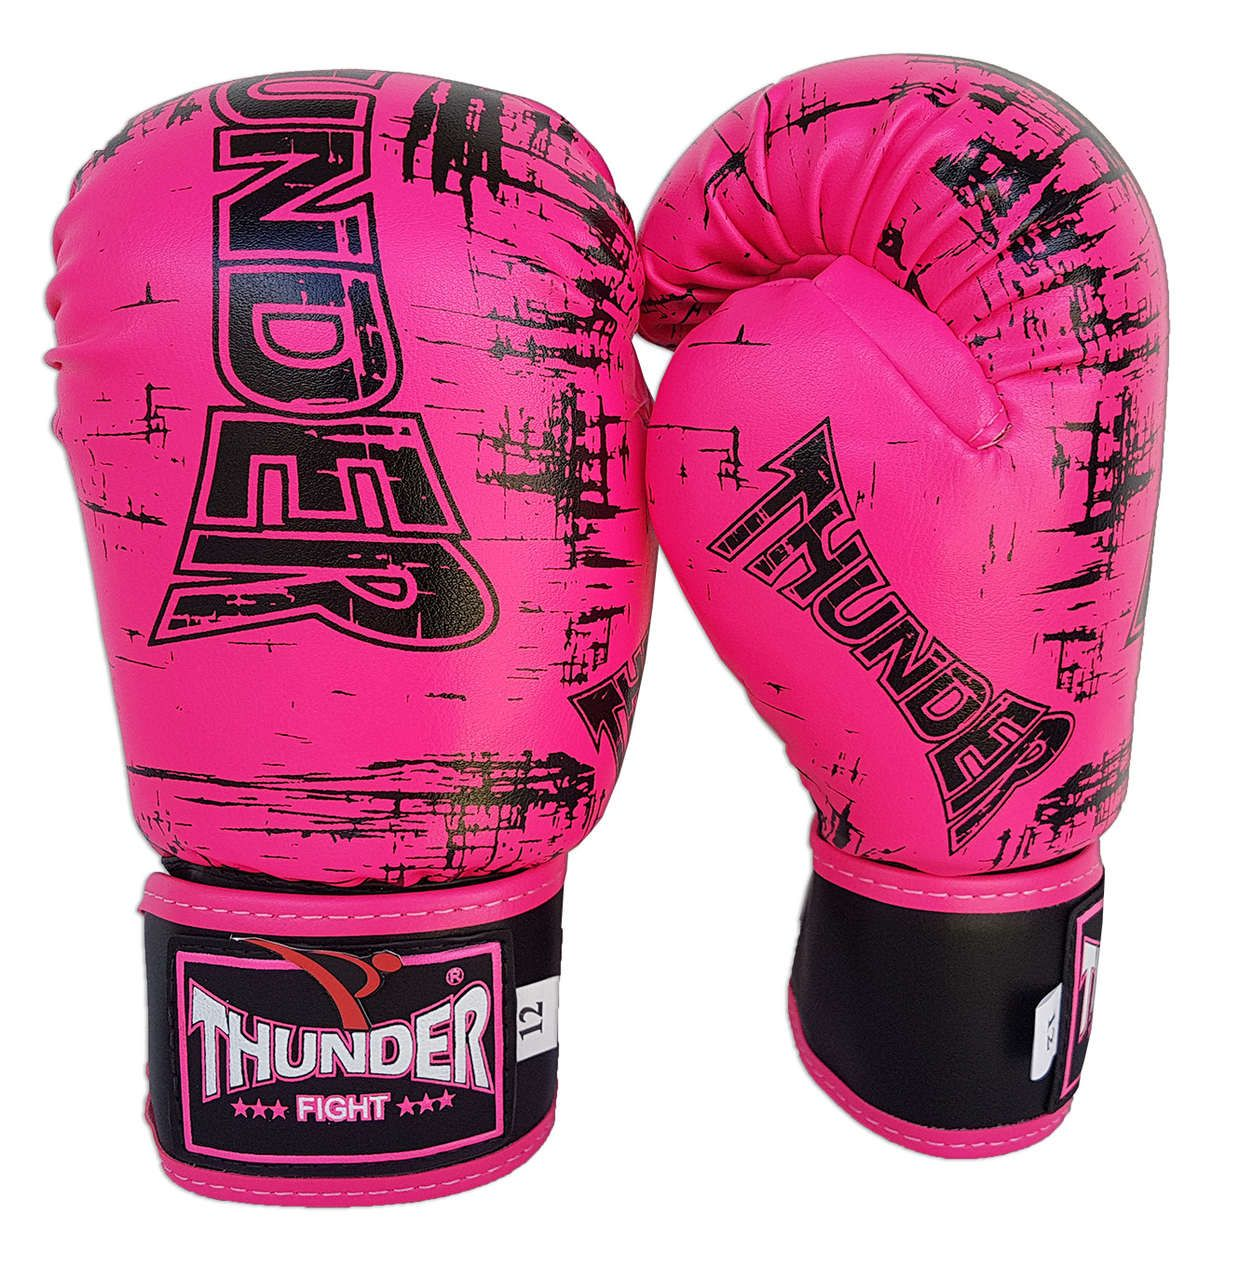 Kit de Boxe / Muay Thai Feminino 12oz - Rosa Riscado - Thunder Fight   - PRALUTA SHOP